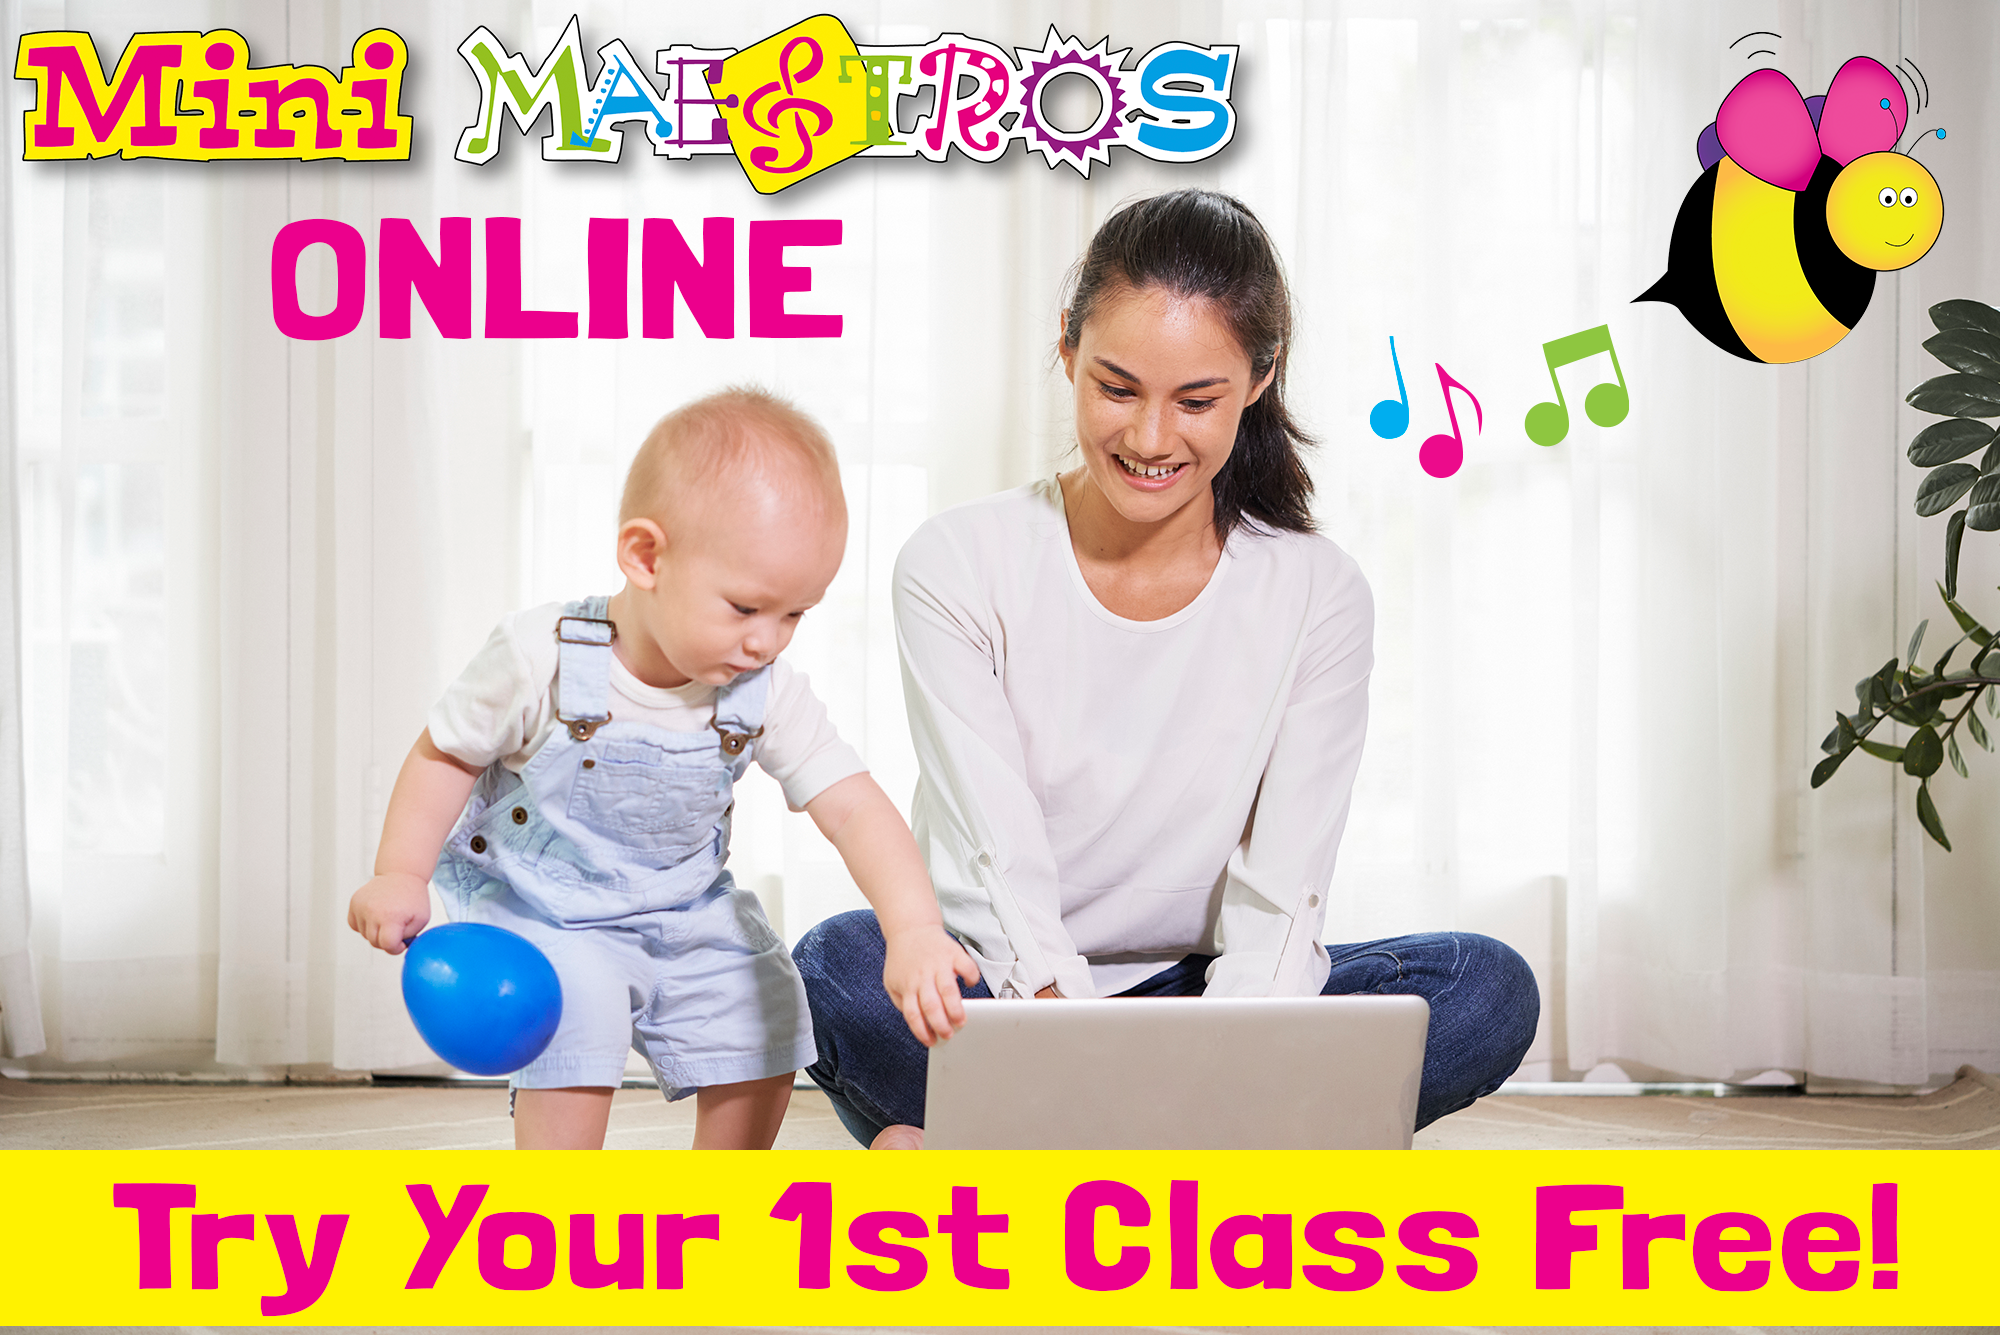 Try your 1st class free!